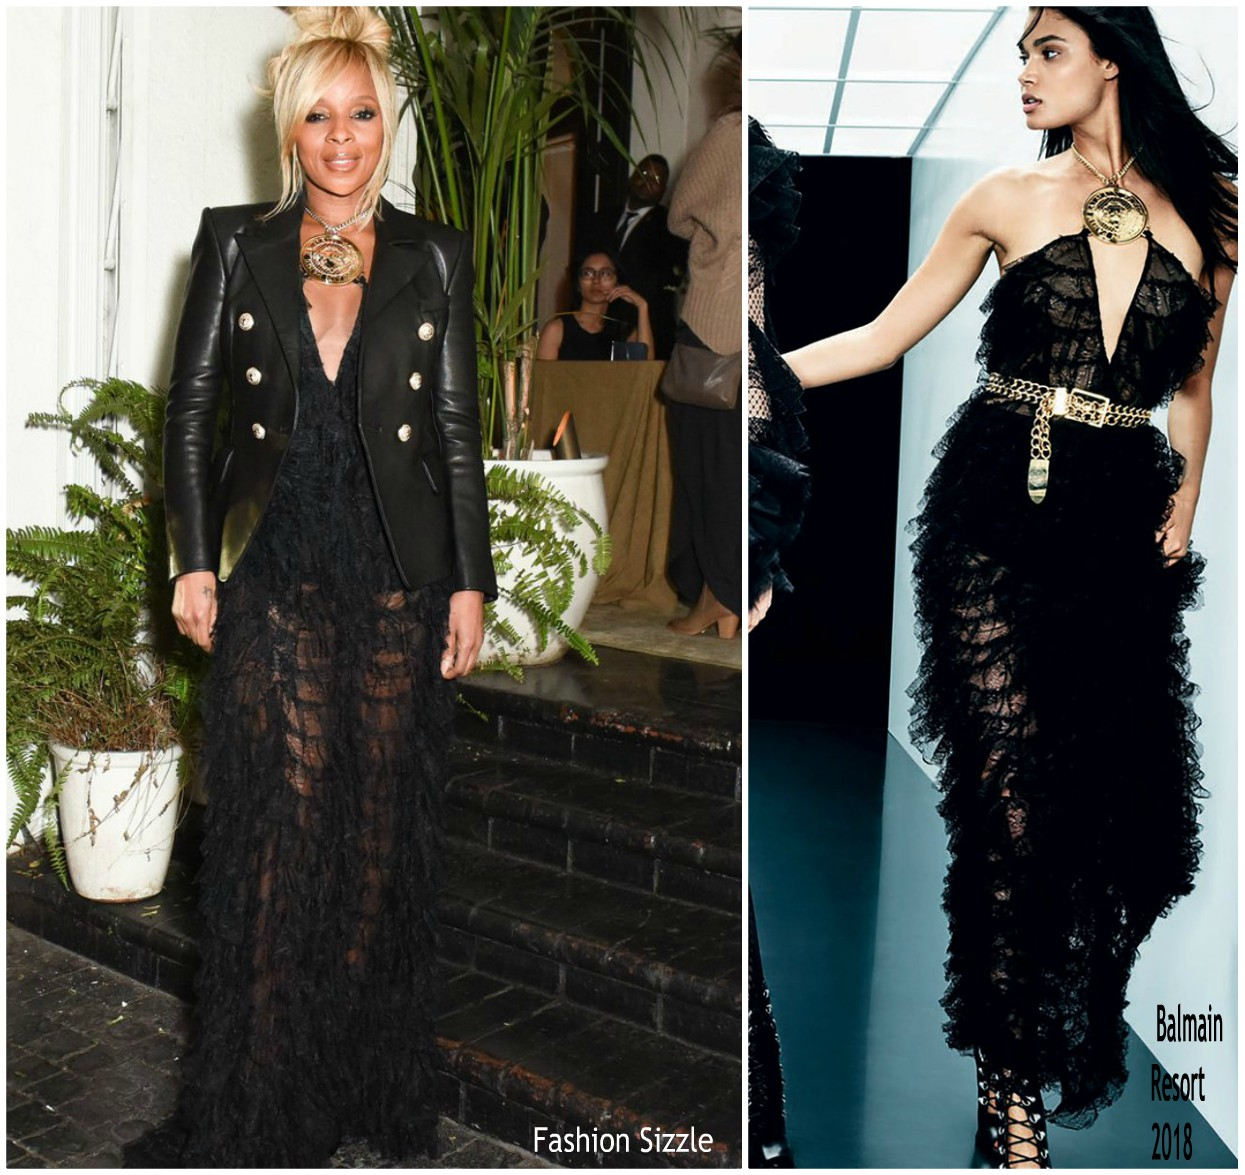 mary-j-blige-in-balmain-w-magazine-celebrates-its-best-performances-portfolio